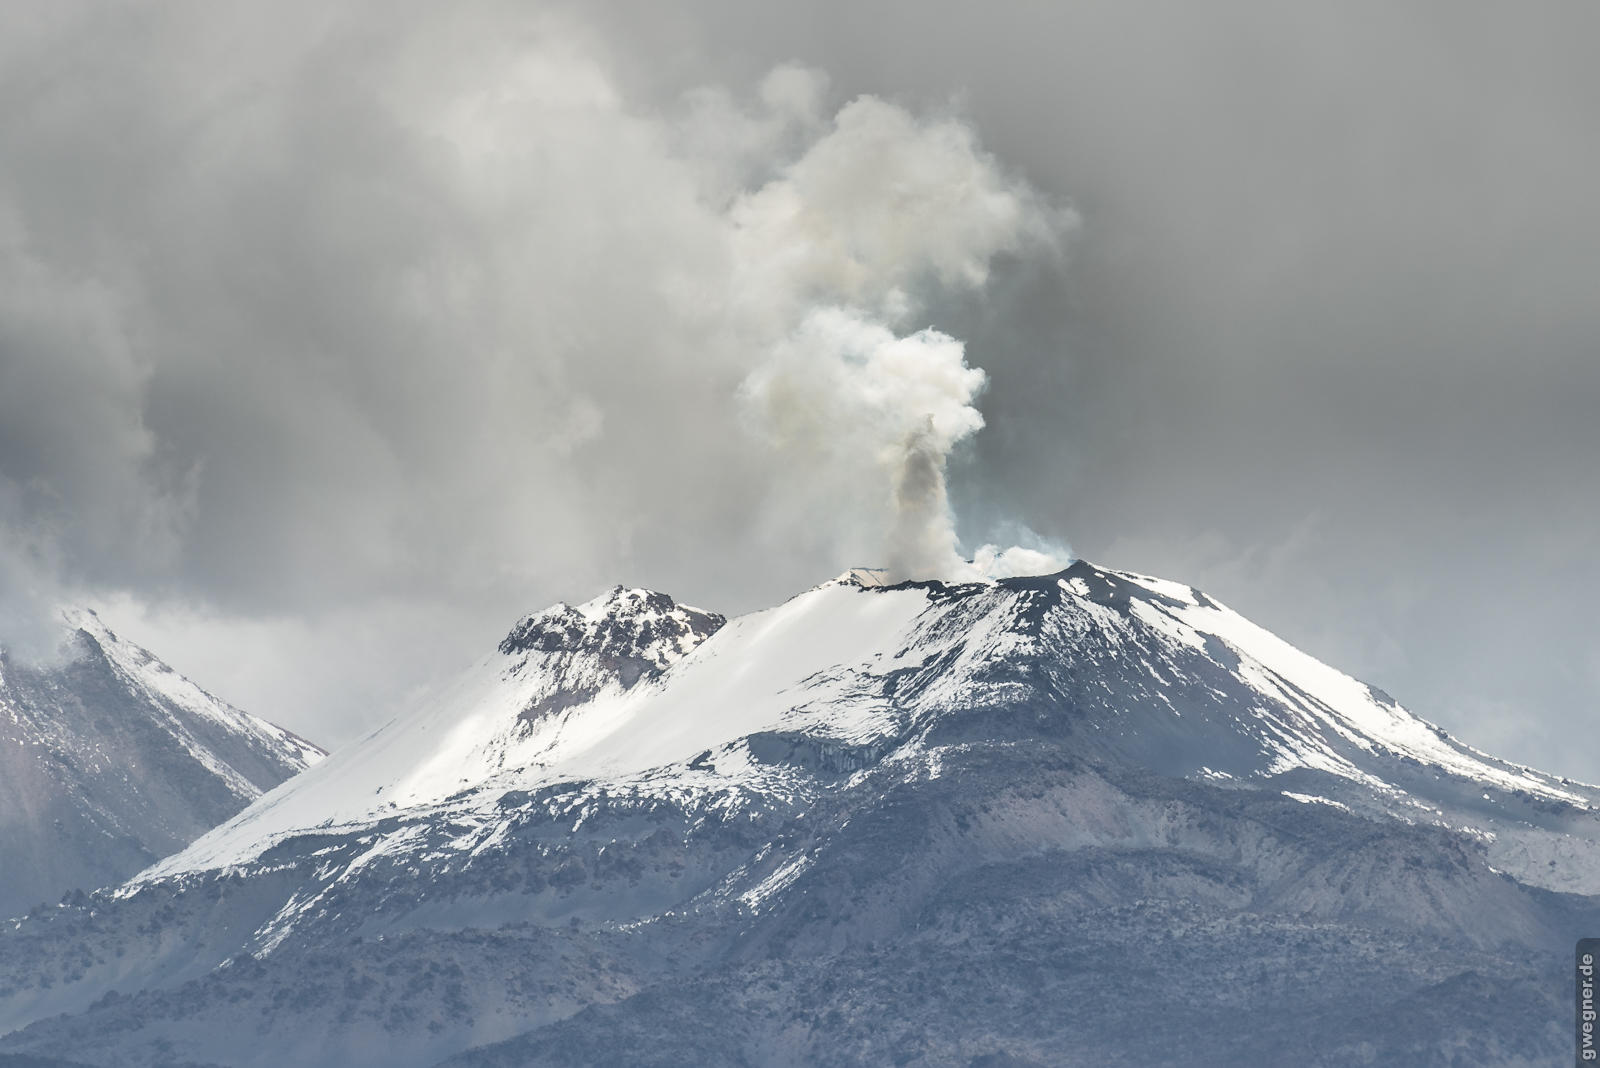 Peru Eruption gwegner